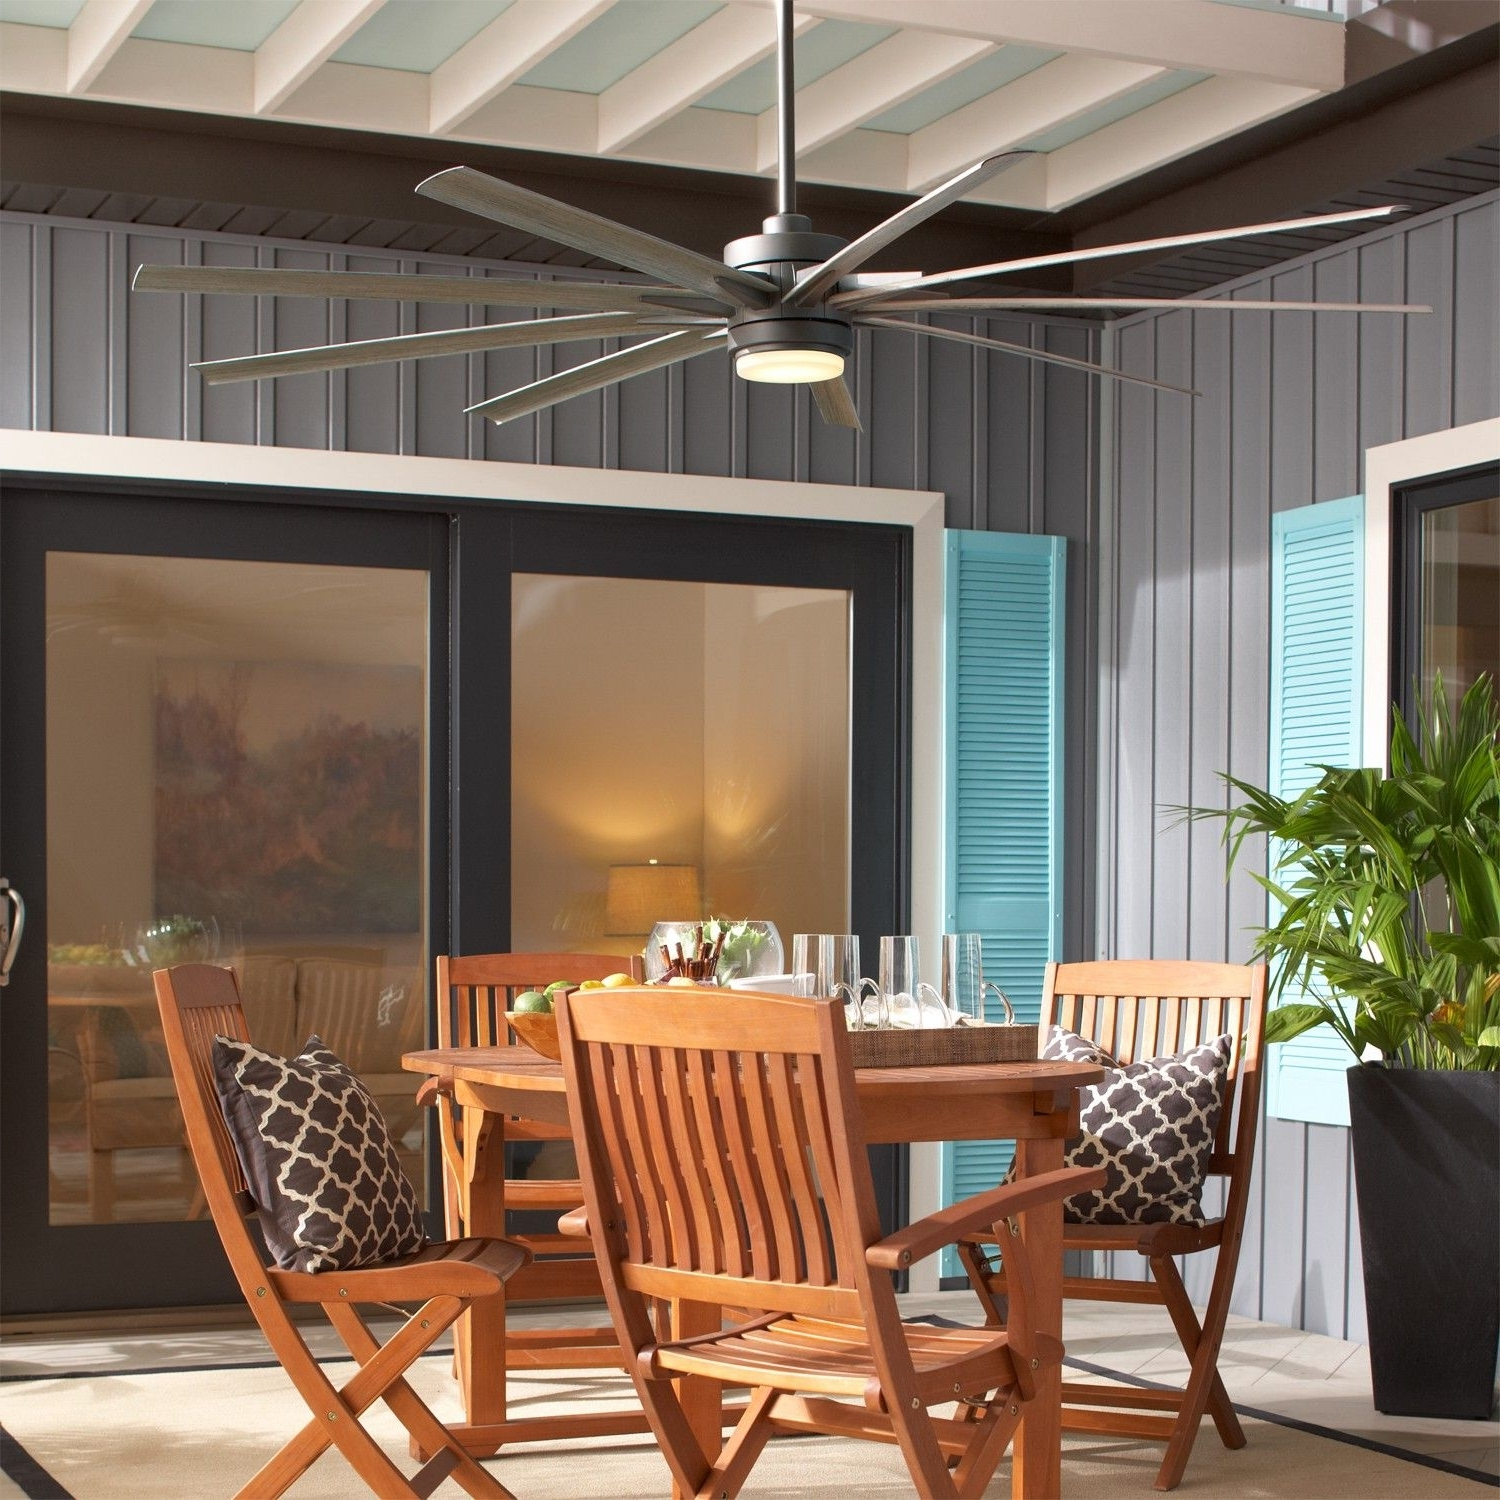 How To Choose A Ceiling Fan – Size Guide, Blades & Airflow (View 16 of 20)